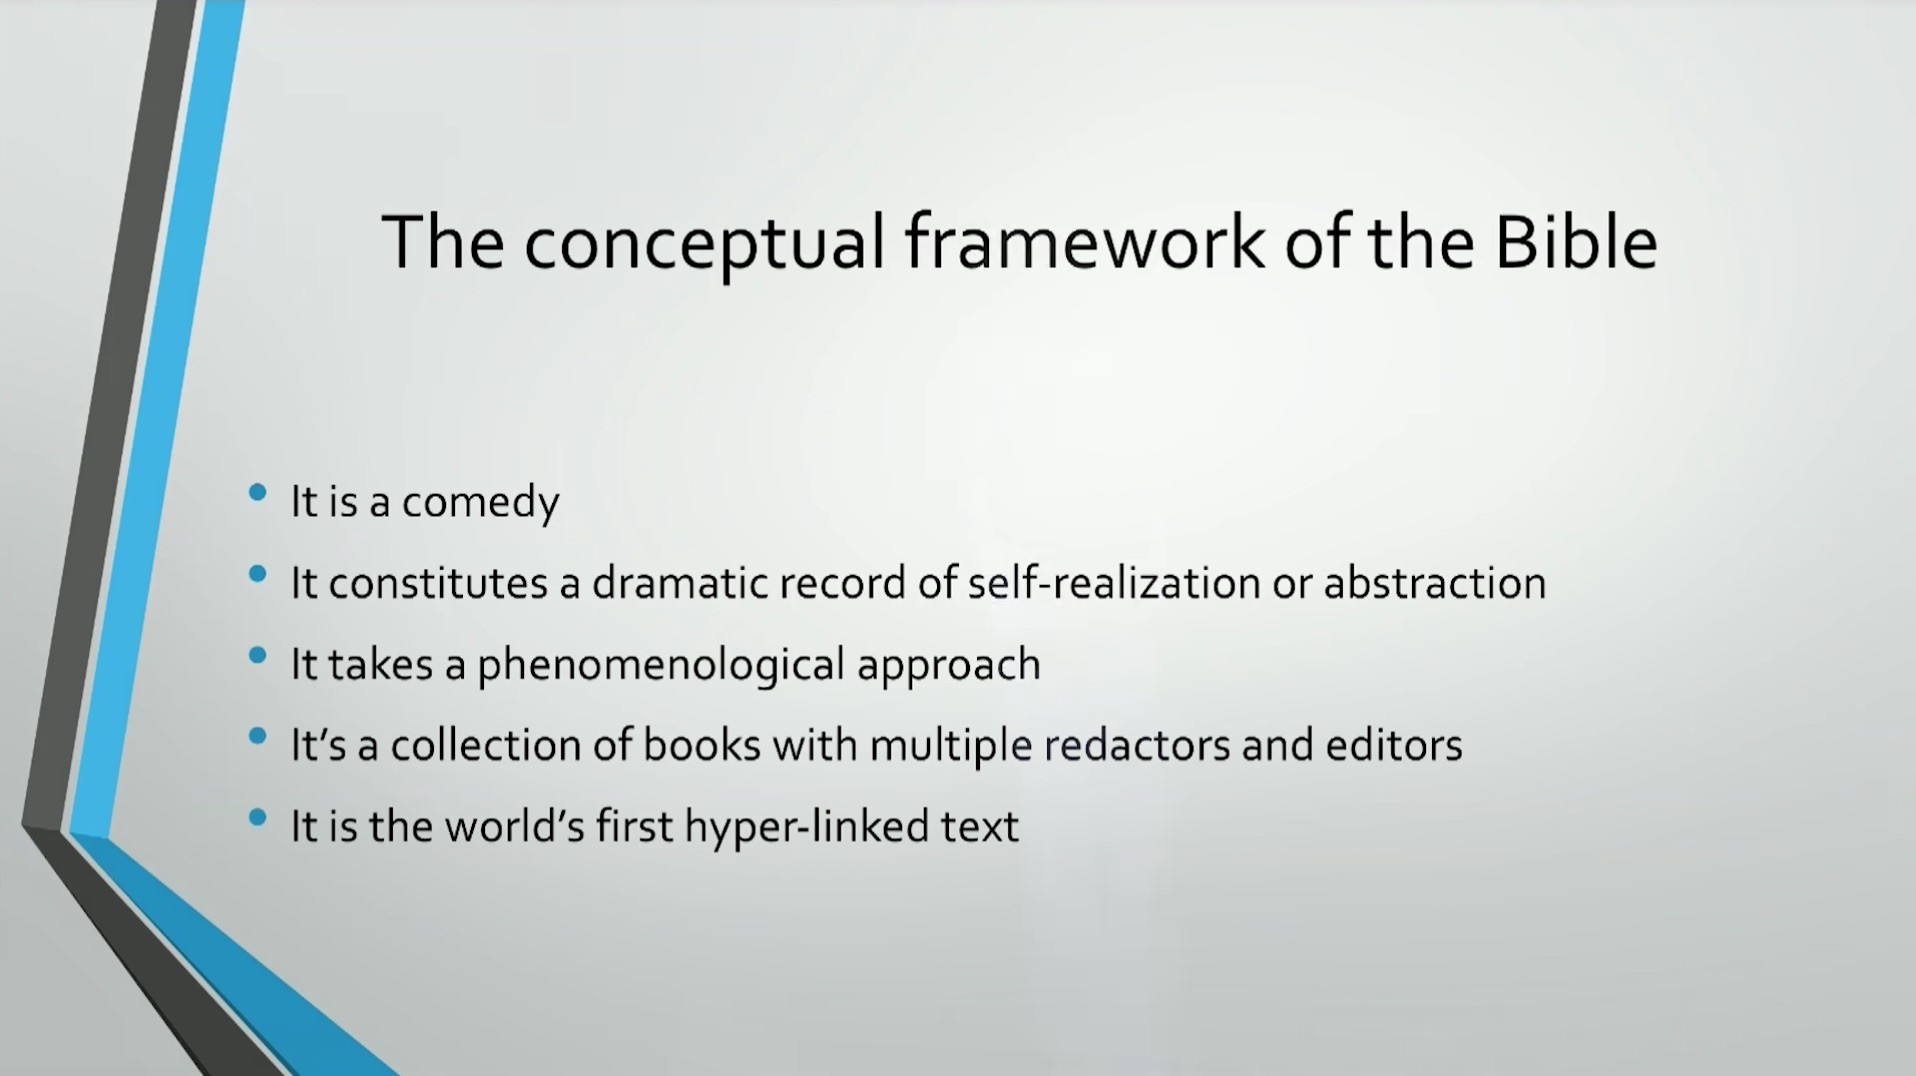 The Art of Dramatic Writing: Its Basis in the Creative Interpretation of Human Motives book pdf